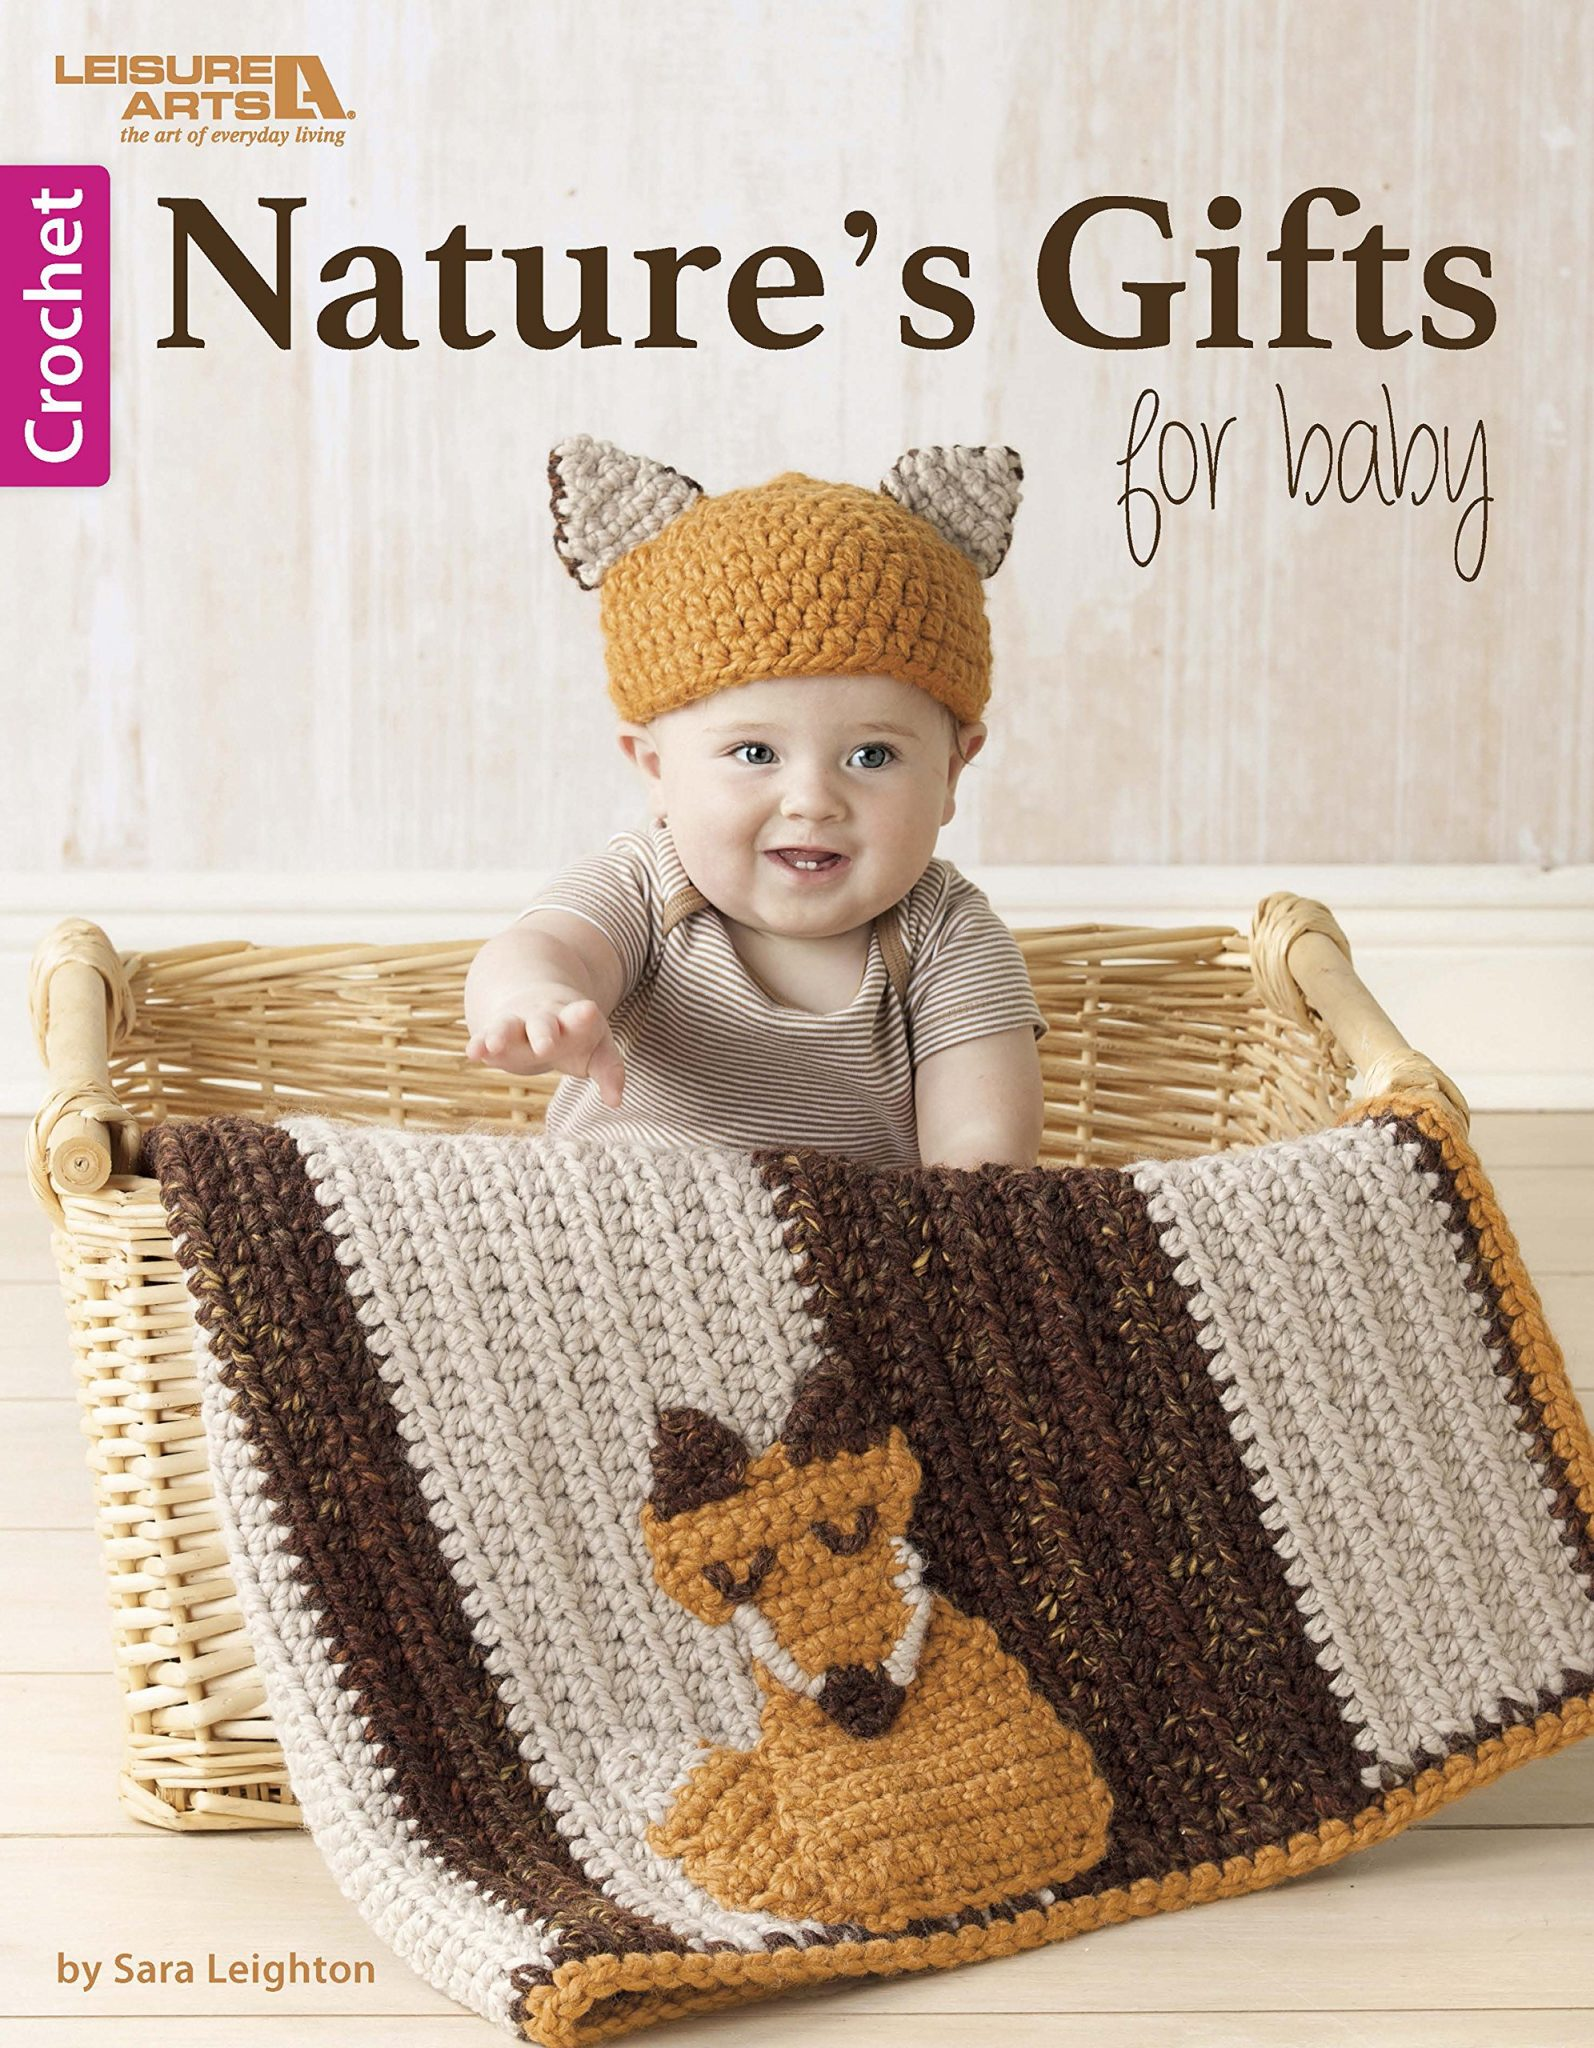 Nature's Gifts for Baby (crochet book review)